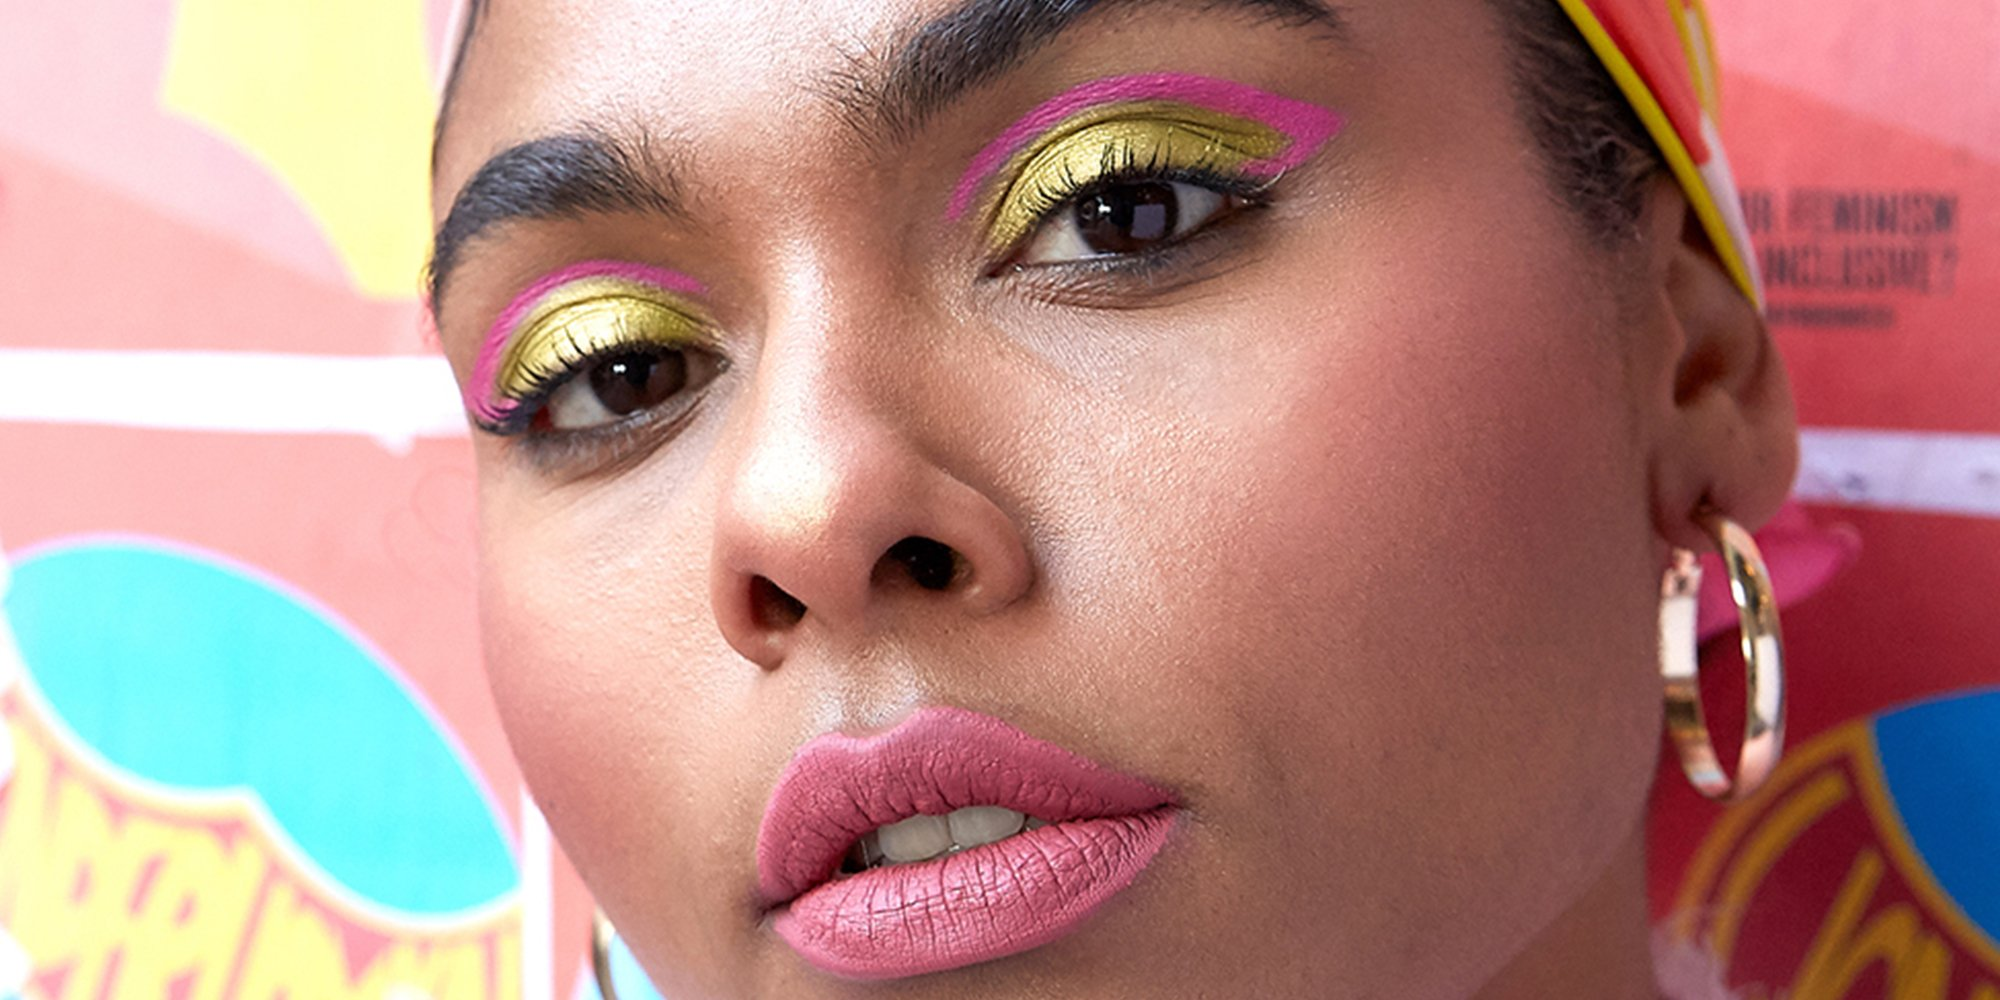 Creative Agency Base Beauty's 10 Big Beauty Industry Projections For Next Year